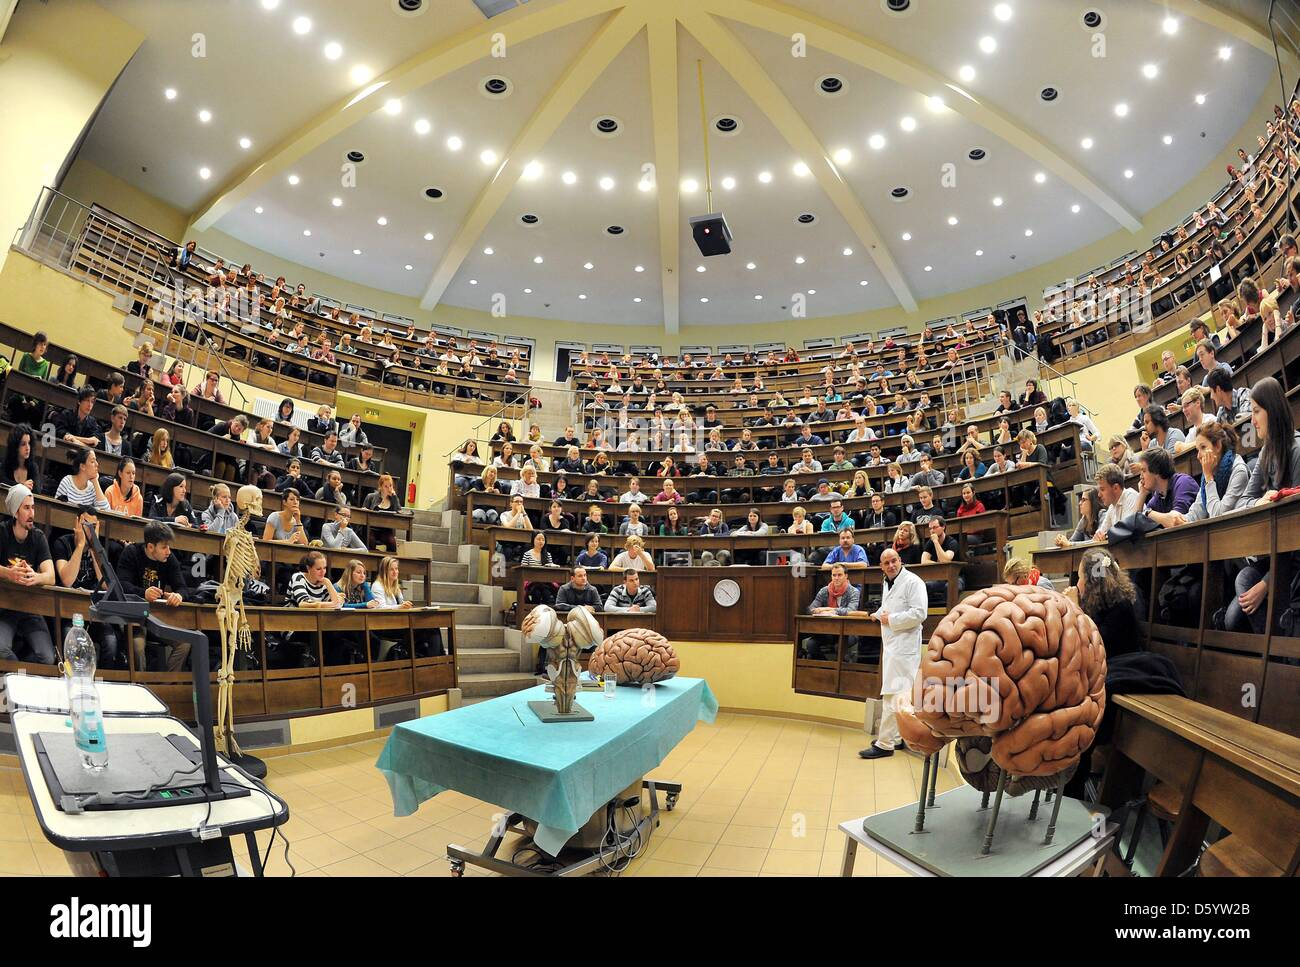 Students Of The Medicine Department Attend A Lecture At The